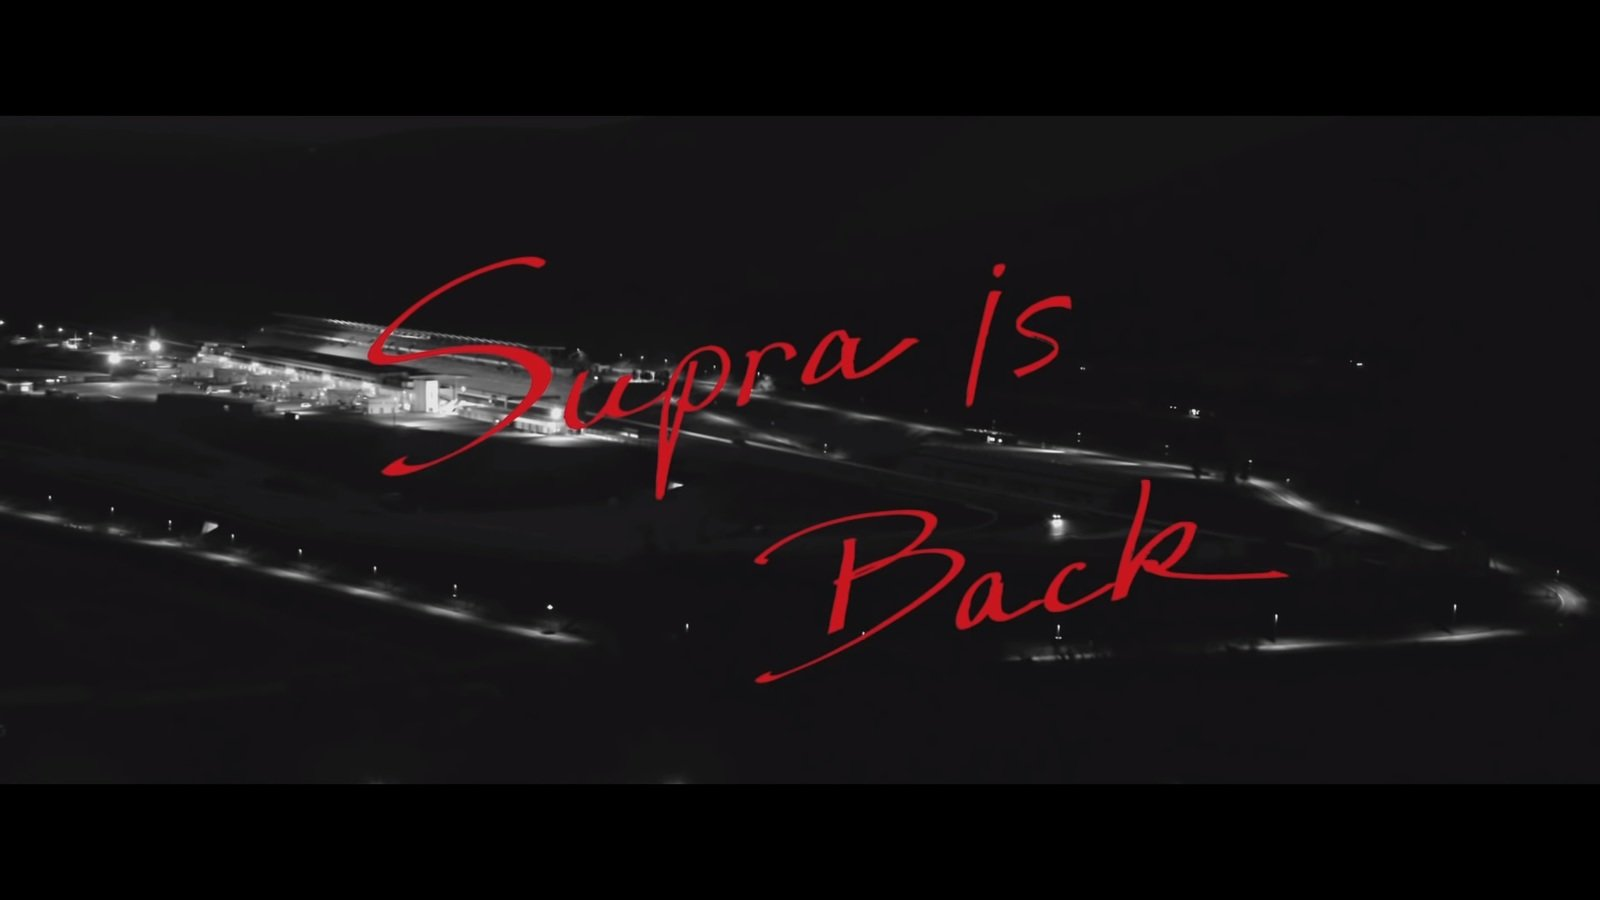 2018 Toyota Supra >> Toyota Pushes The 2020 Supra To The Limit On The Race ...